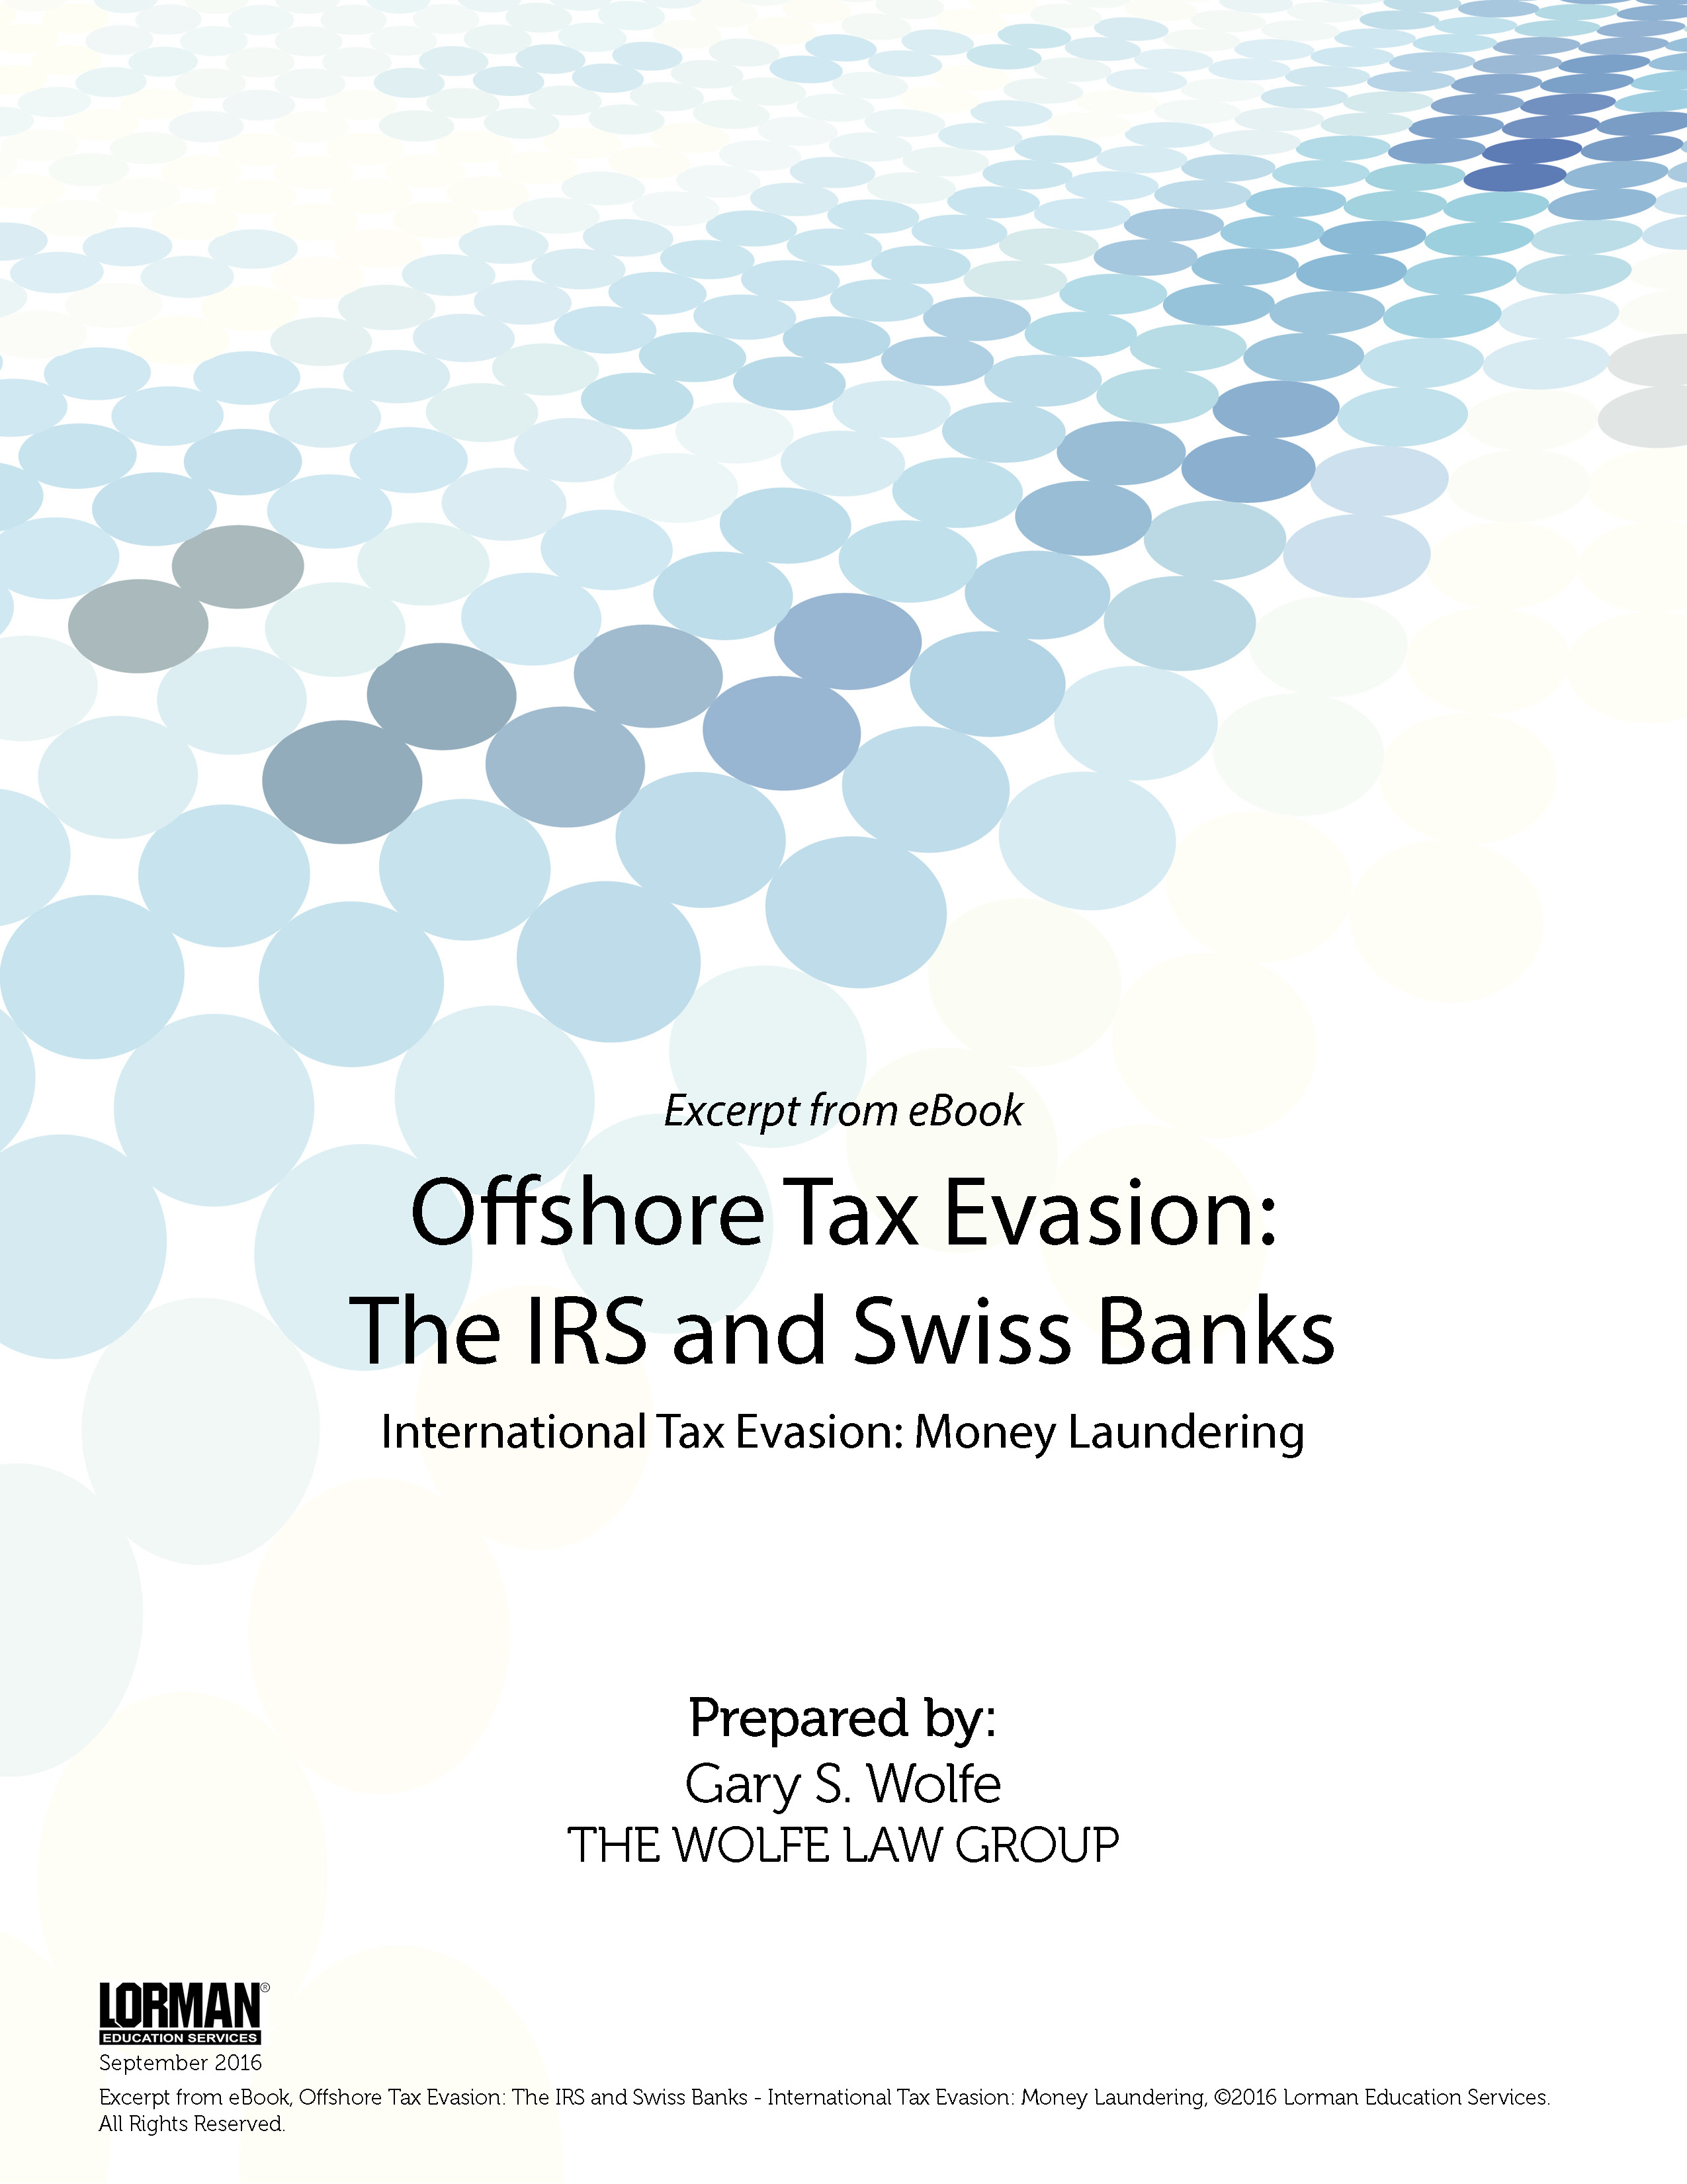 Offshore Tax Evasion: The IRS and Swiss Banks - International Tax Evasion: Money Laundering